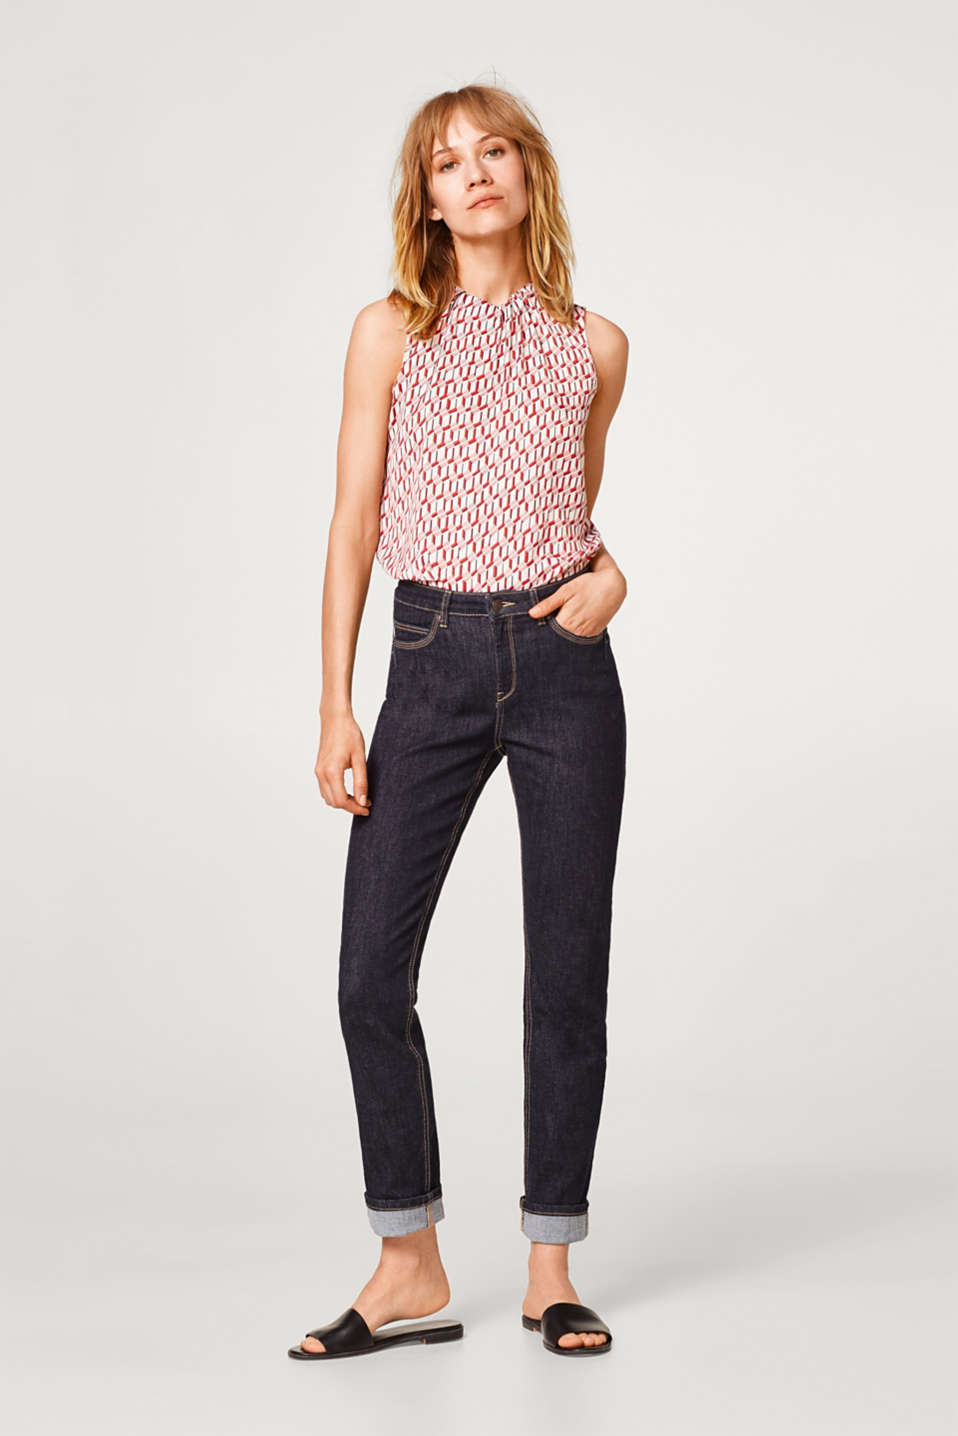 Dark stretch jeans in a five-pocket style